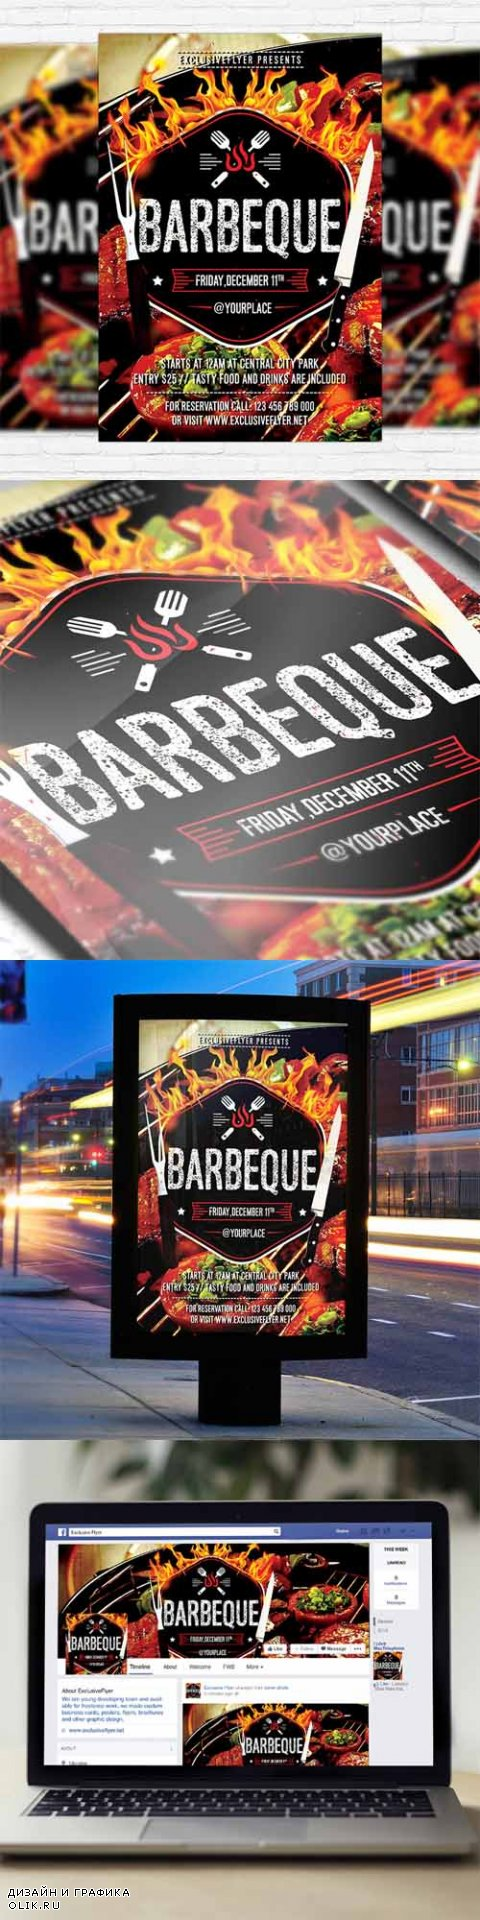 Flyer Template - Barbeque Party + Facebook Cover